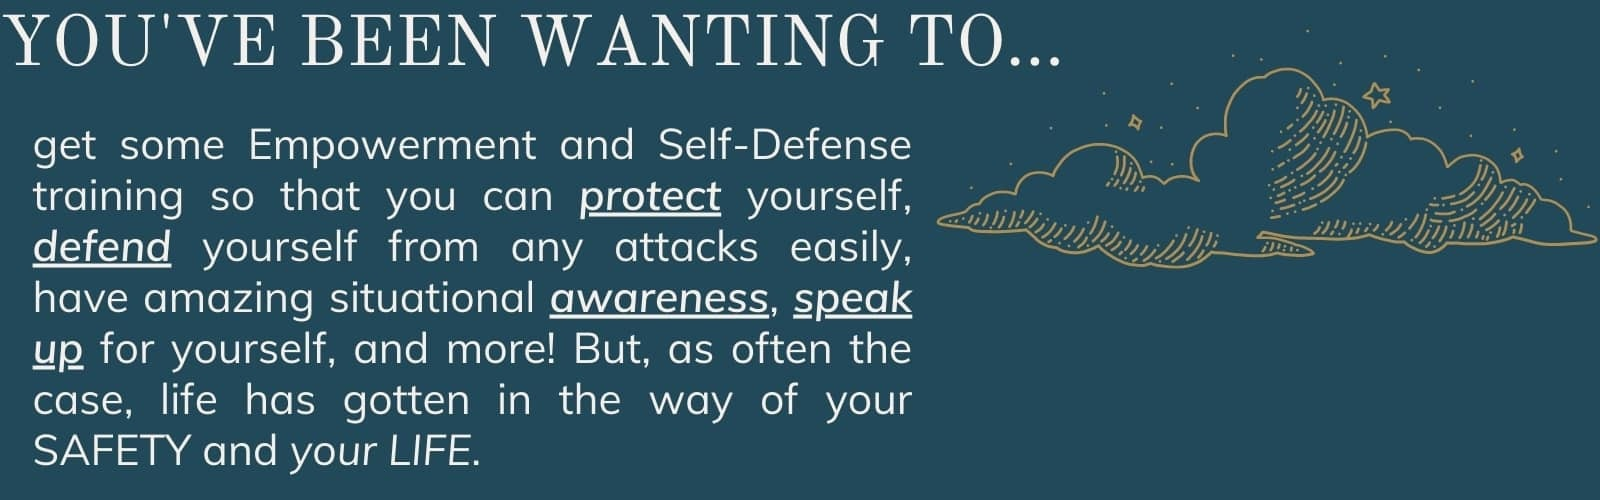 You've been wanting to get some empowerment and self-defense training so taht you can protect yourself, defend yourself from attacks, have amazing situational awareness, speak up for yourself, and more! But, as often the case, life has gotten in the way of your SAFETY.